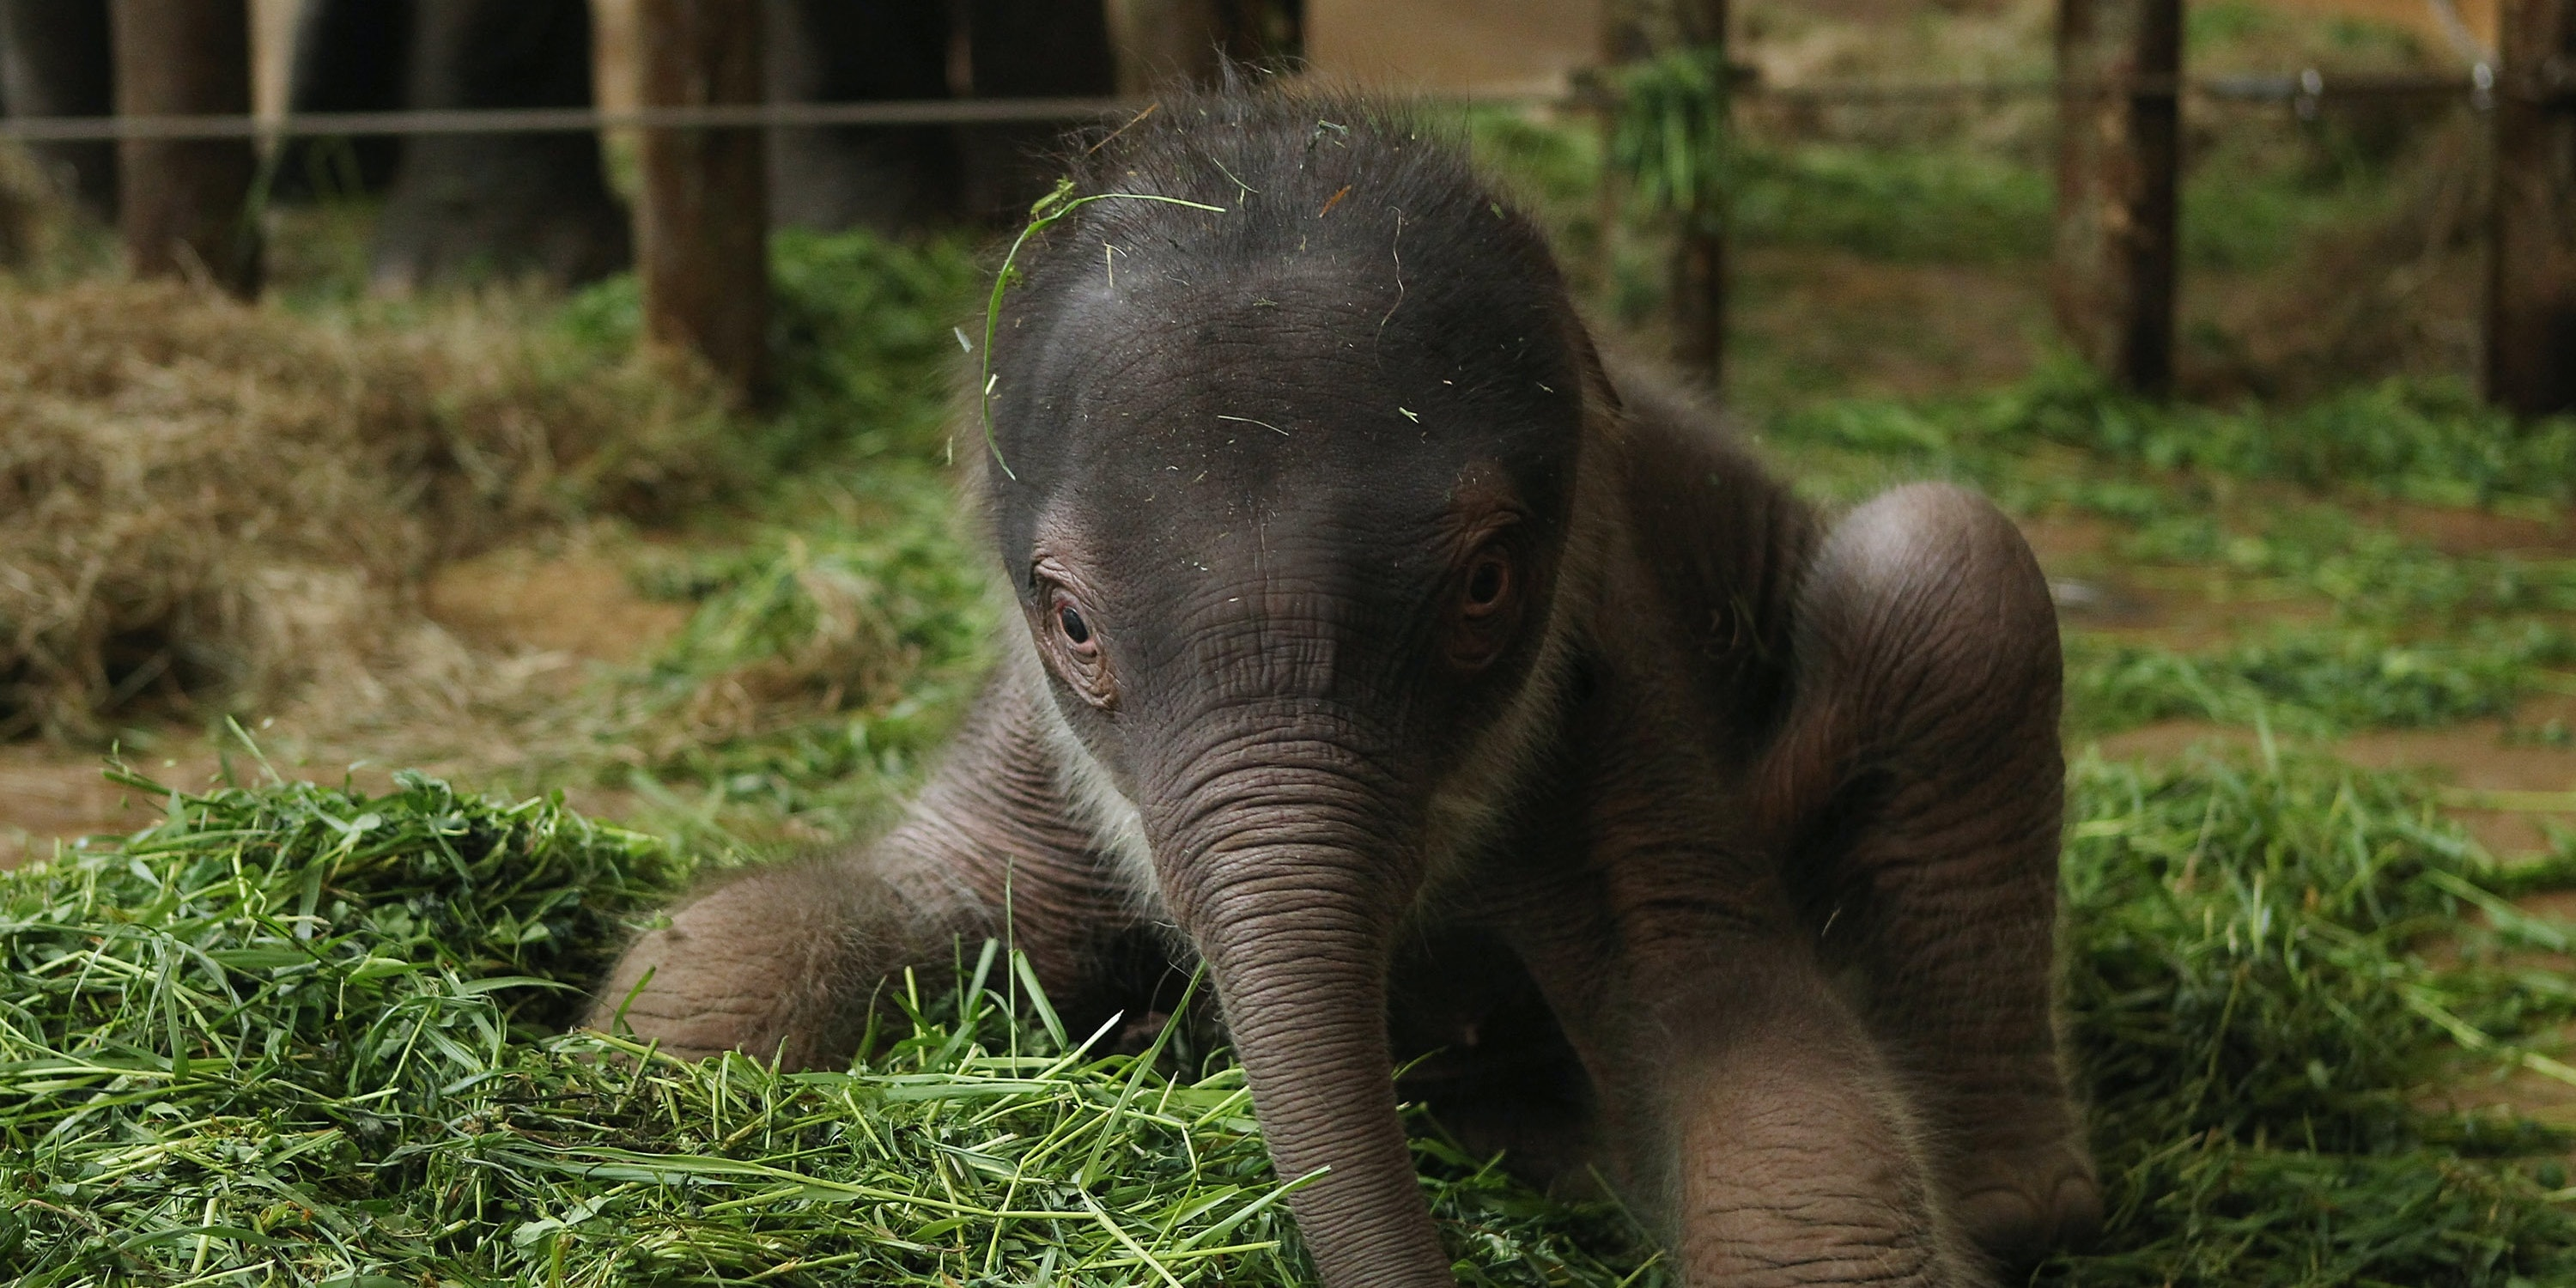 A two-day-old Asian elephant at the Berlin Zoo.